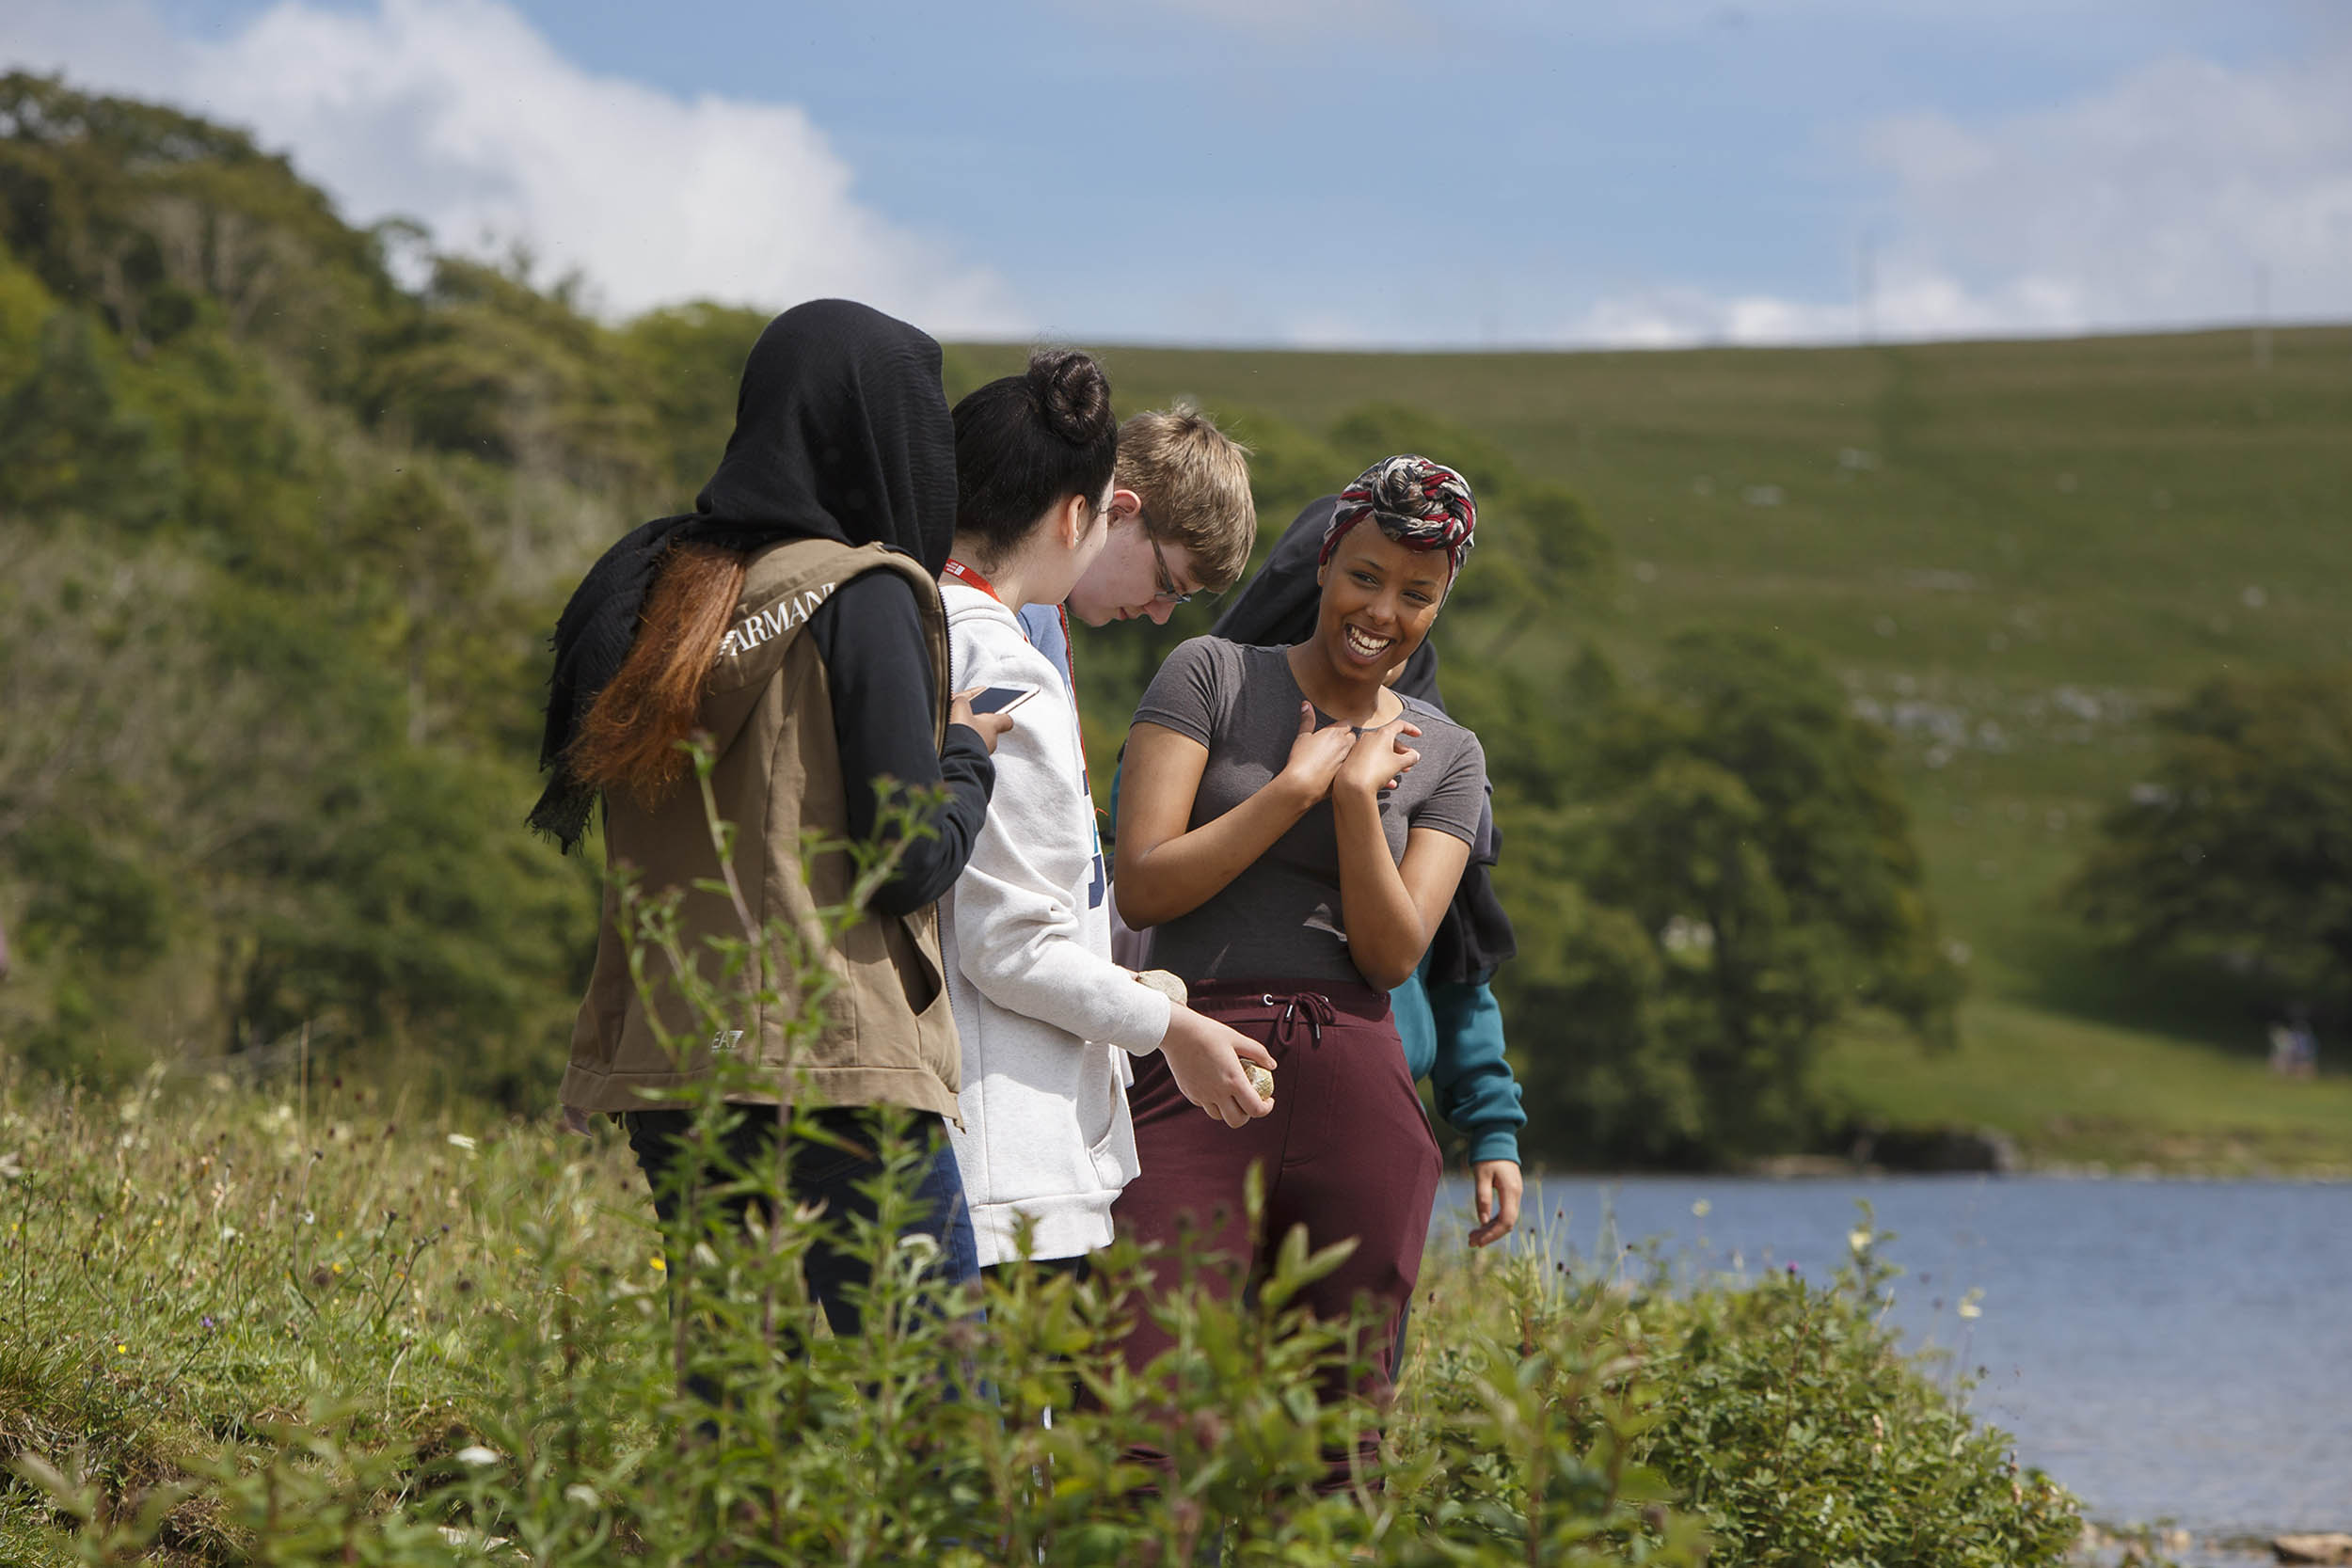 A photograph taken at the British Ecological Society Summer School at Malham Tarn, Yorkshire